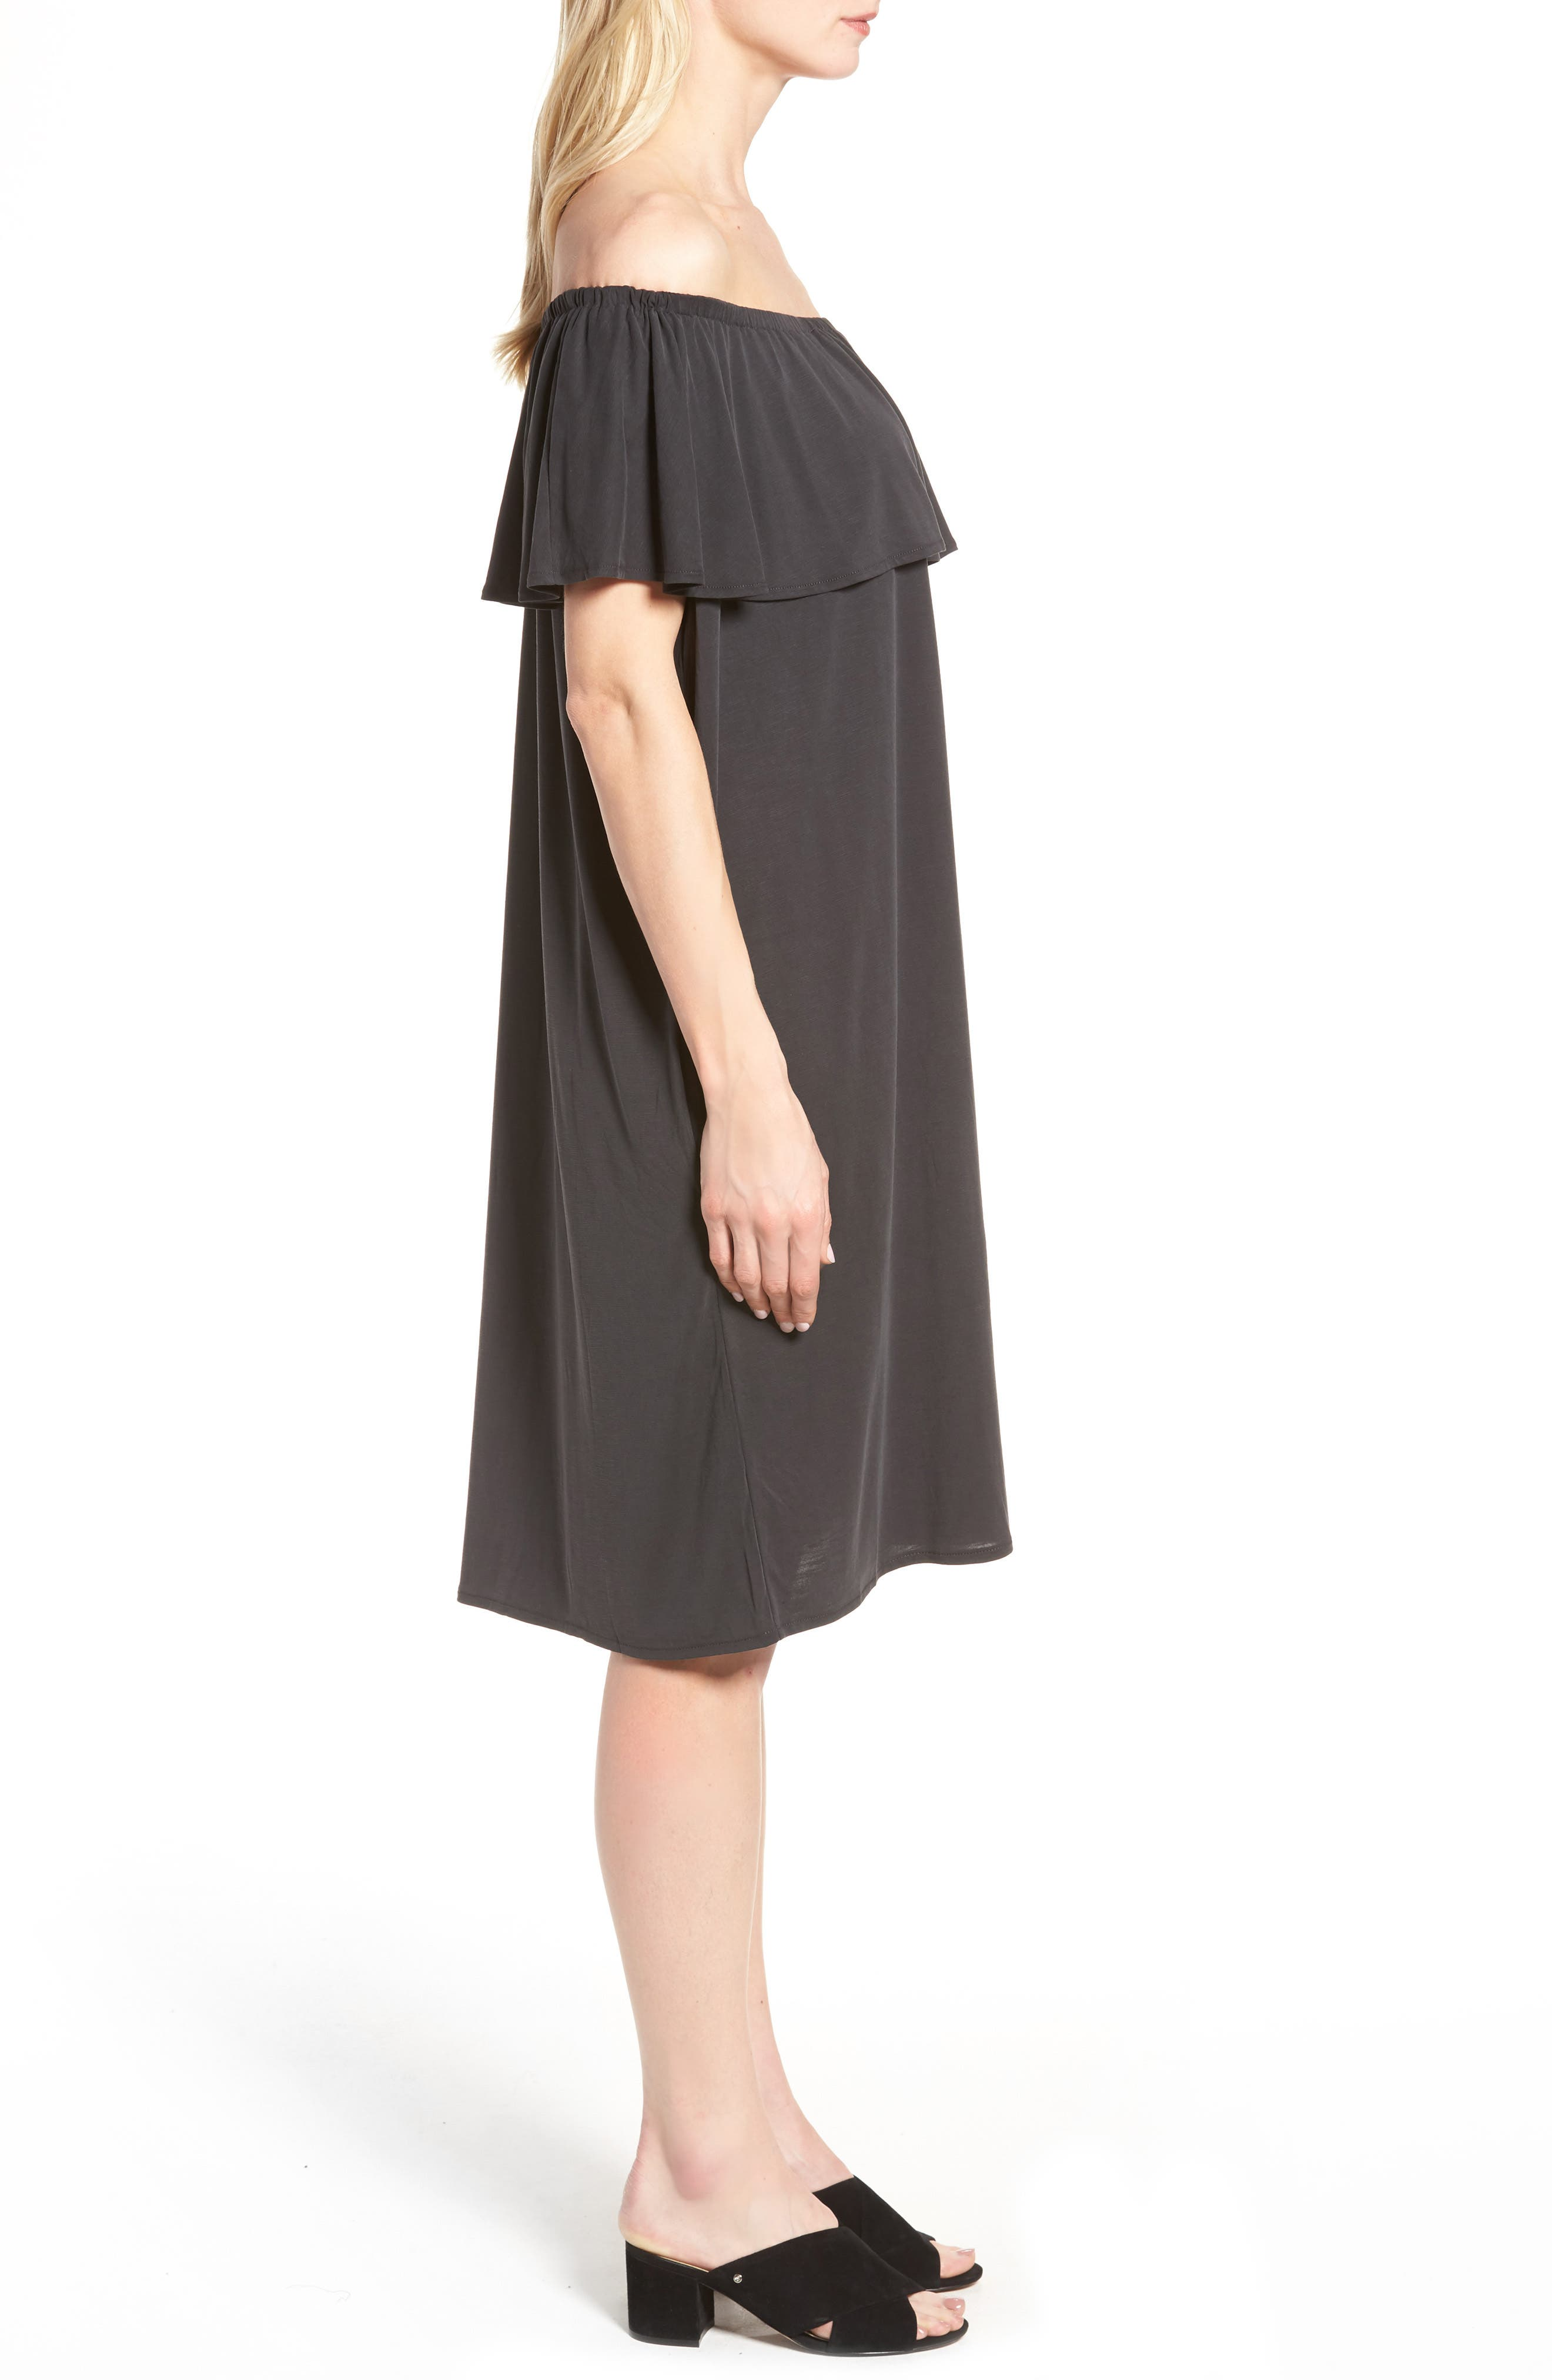 Boardwalk Convertible Jersey Dress,                             Alternate thumbnail 3, color,                             006